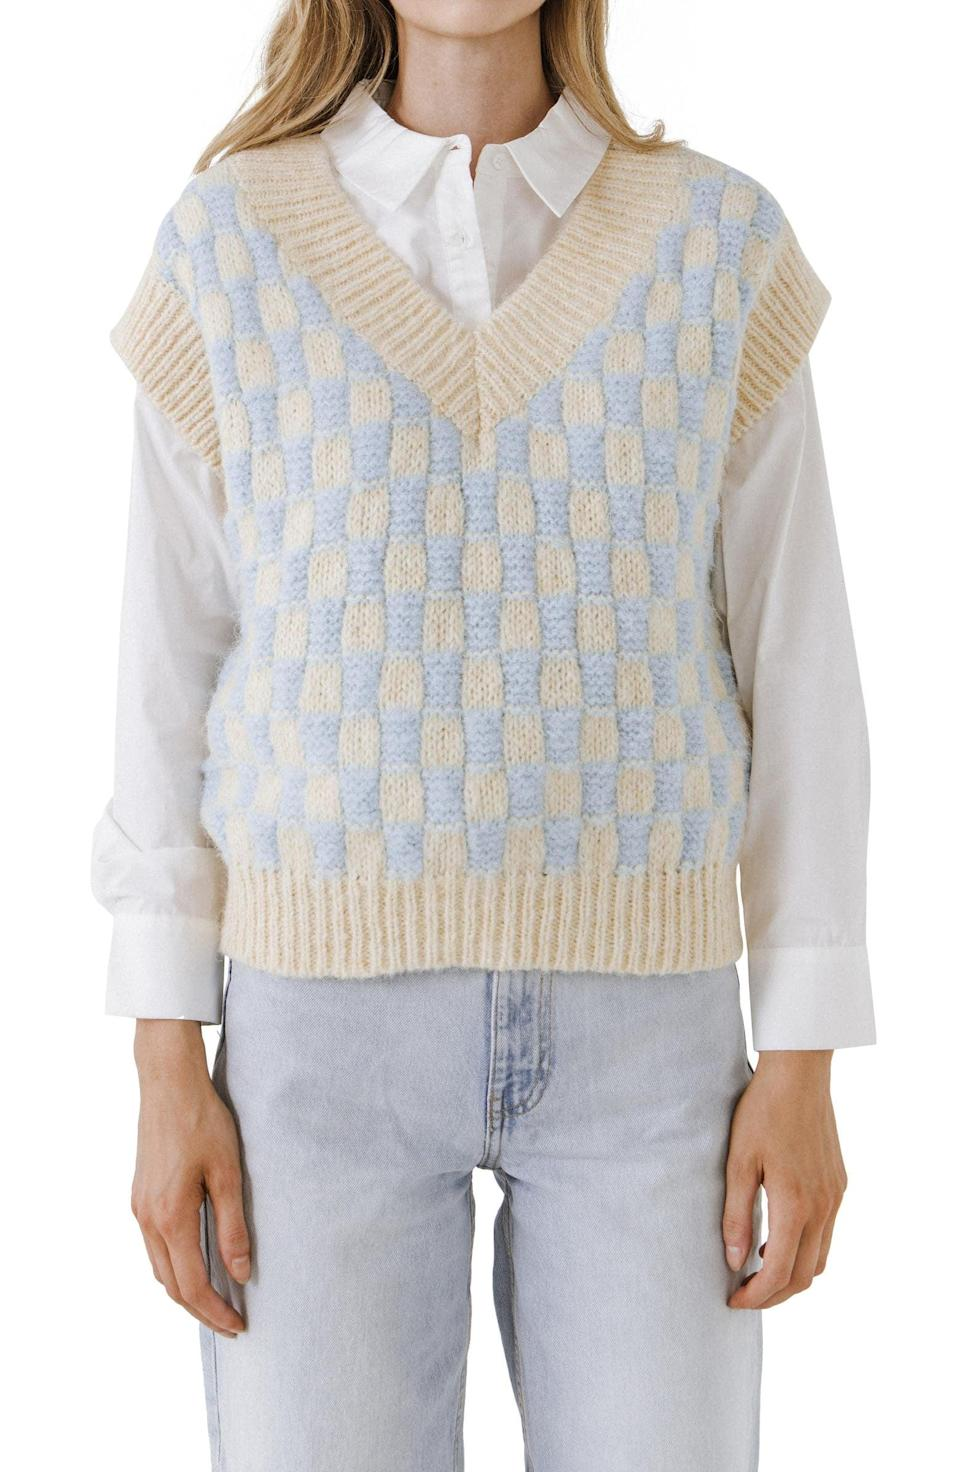 <p>Tap into the checkered knit trend with this retro-inspired <span>English Factory Check Sweater Vest</span> ($80). If you'd like to dial up the school vibes, finish off the look with a button-down and some jeans.</p>